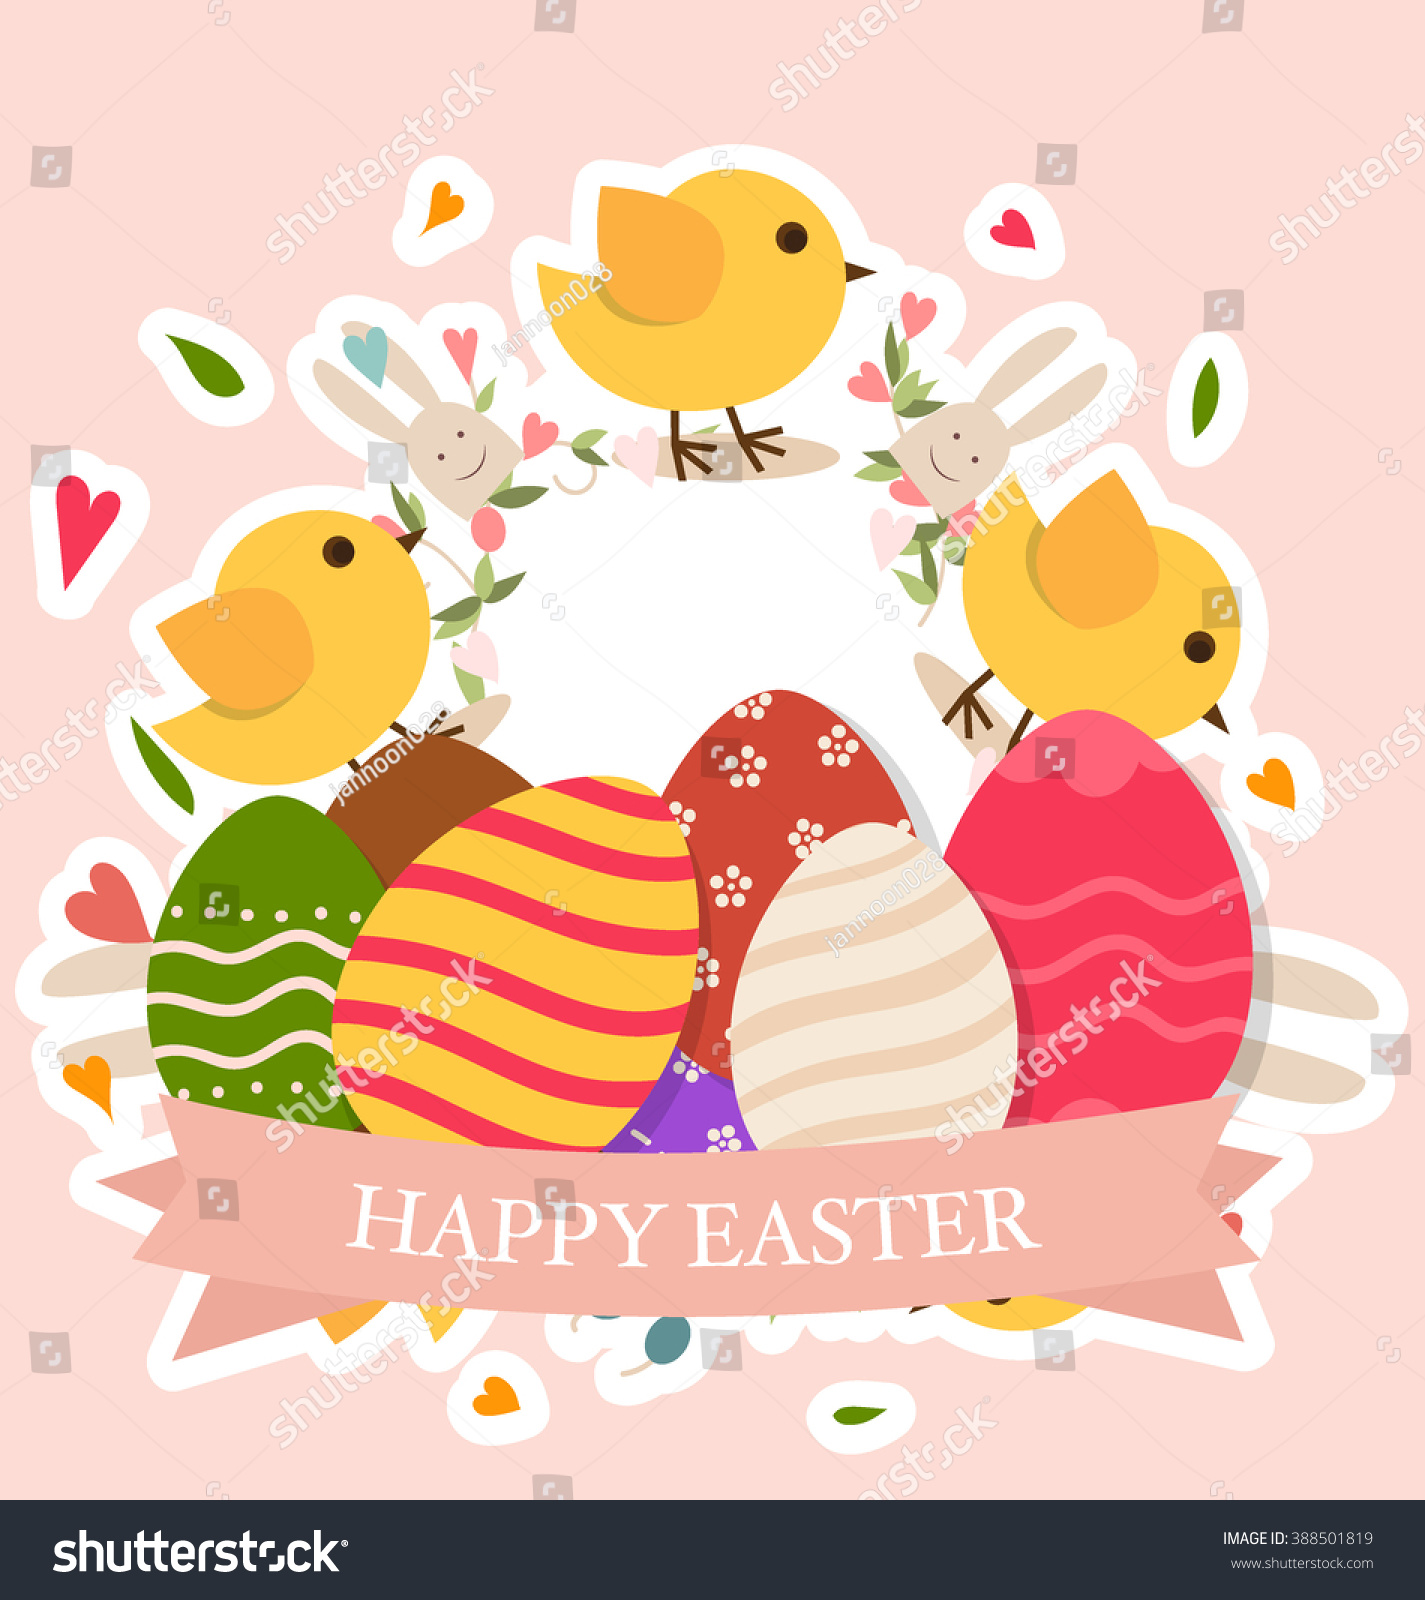 Happy Easter Cards Easter Bunnies Easter Stock Vector Royalty Free